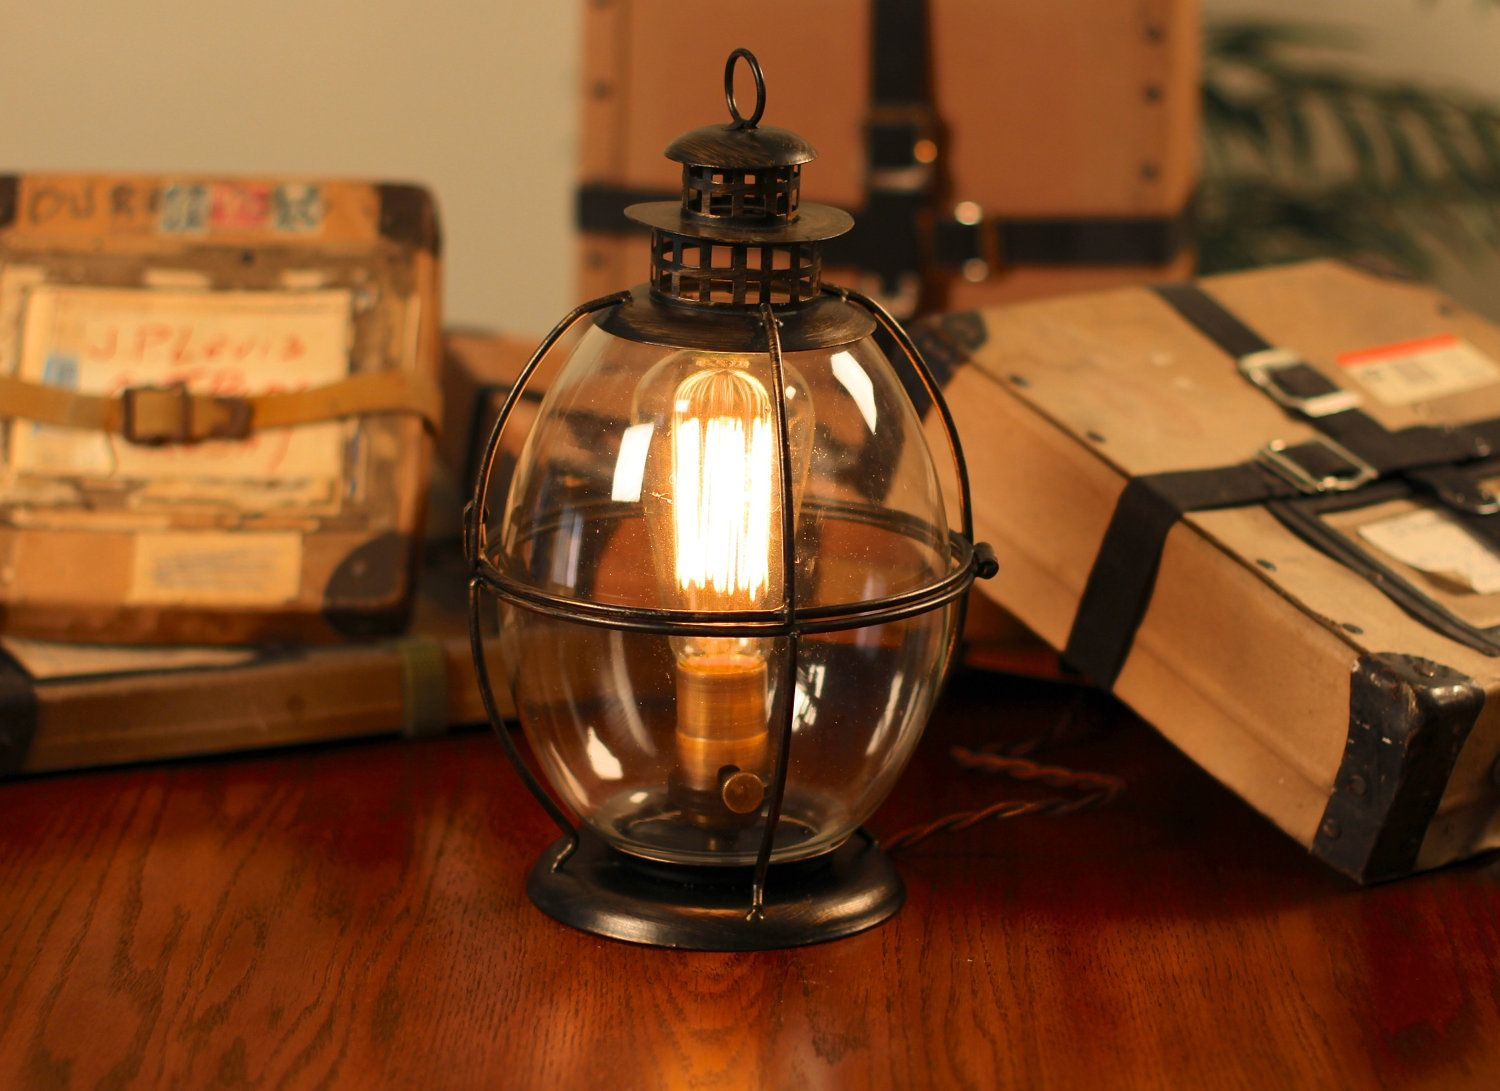 Edison Lamp, Vintage Lantern Table Lamp, Rustic Industrial Lamp, Edison Bulb,  Steampunk, Antique